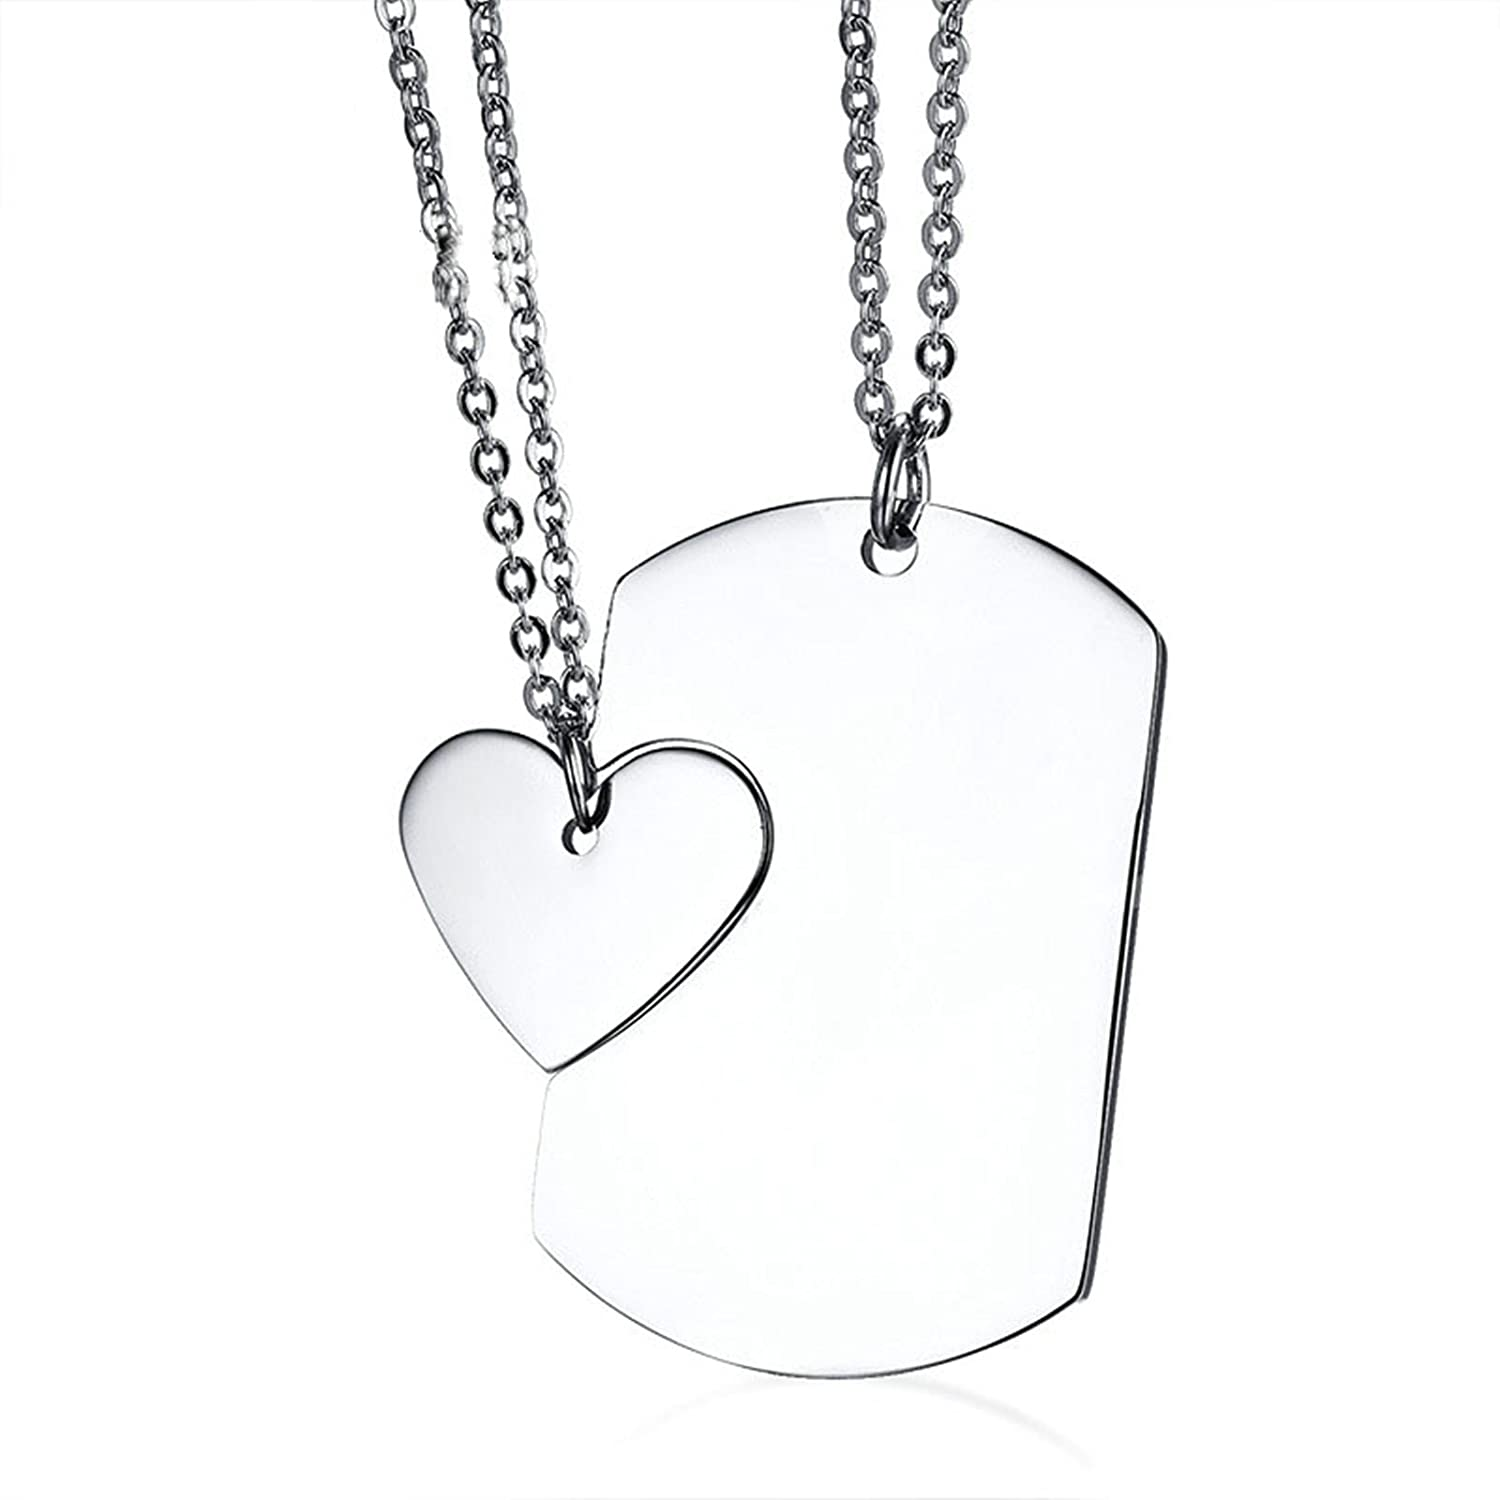 Bishilin Stainless Steel Necklace for Couple High Polished Heart Dog Tag Puzzle Pendant Silver